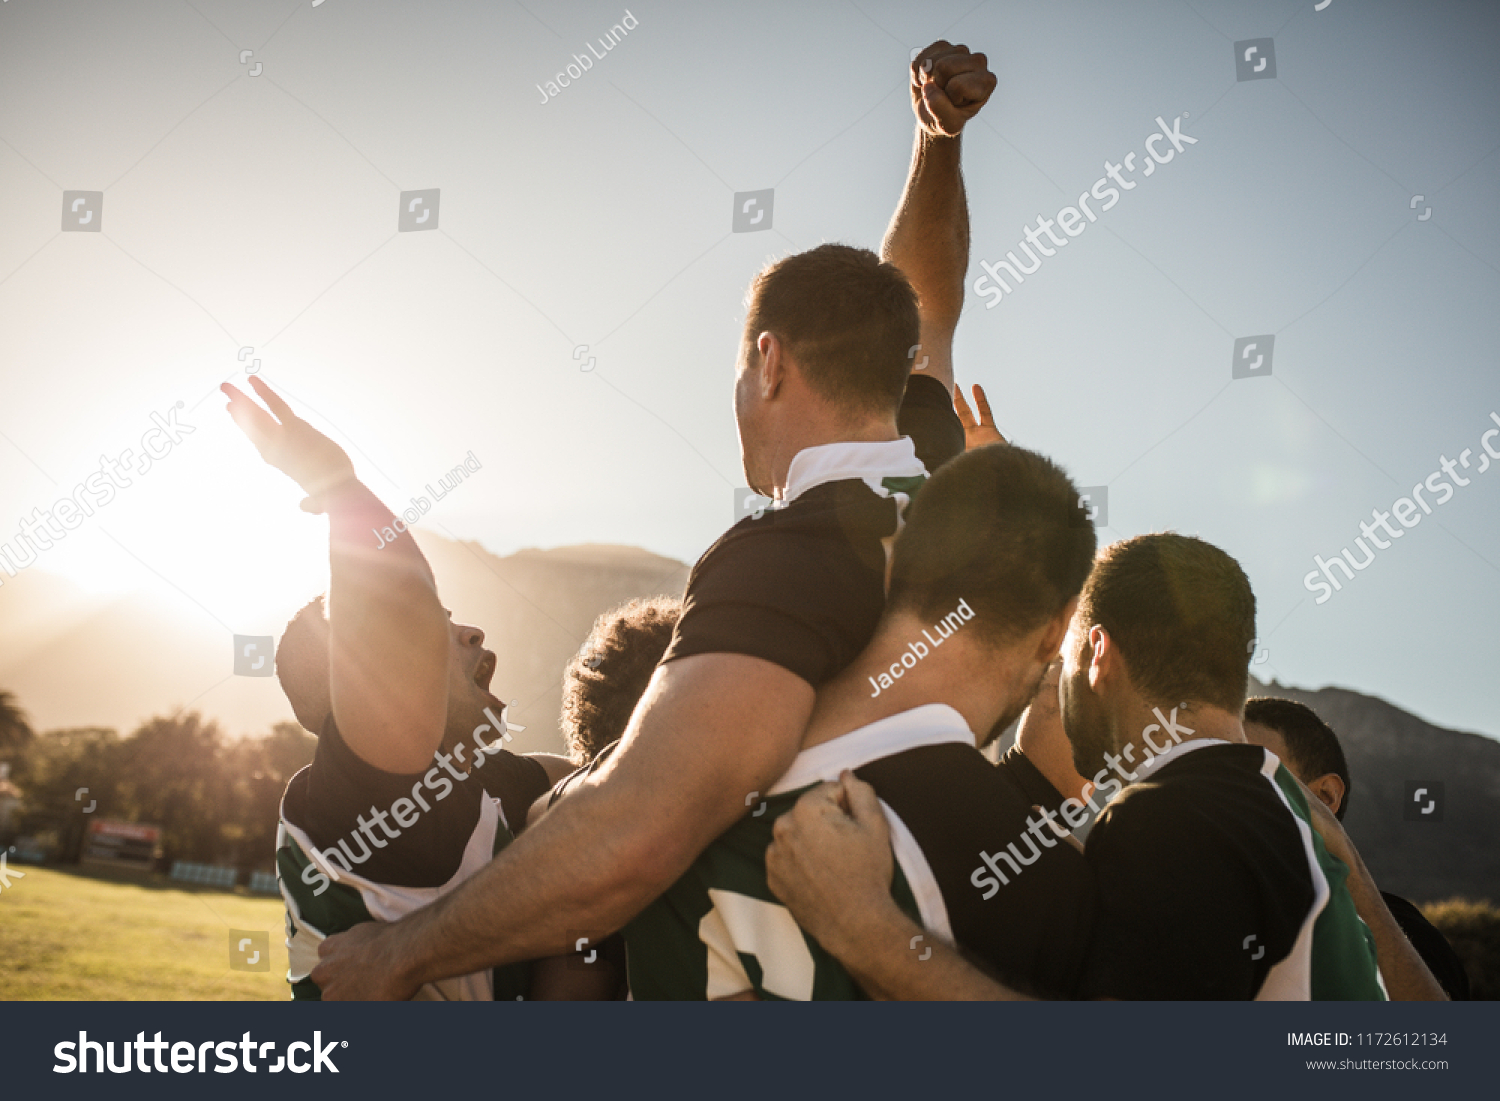 Rugby players lifting the teammate after winning the game. Rugby team celebrating the victory. #1172612134